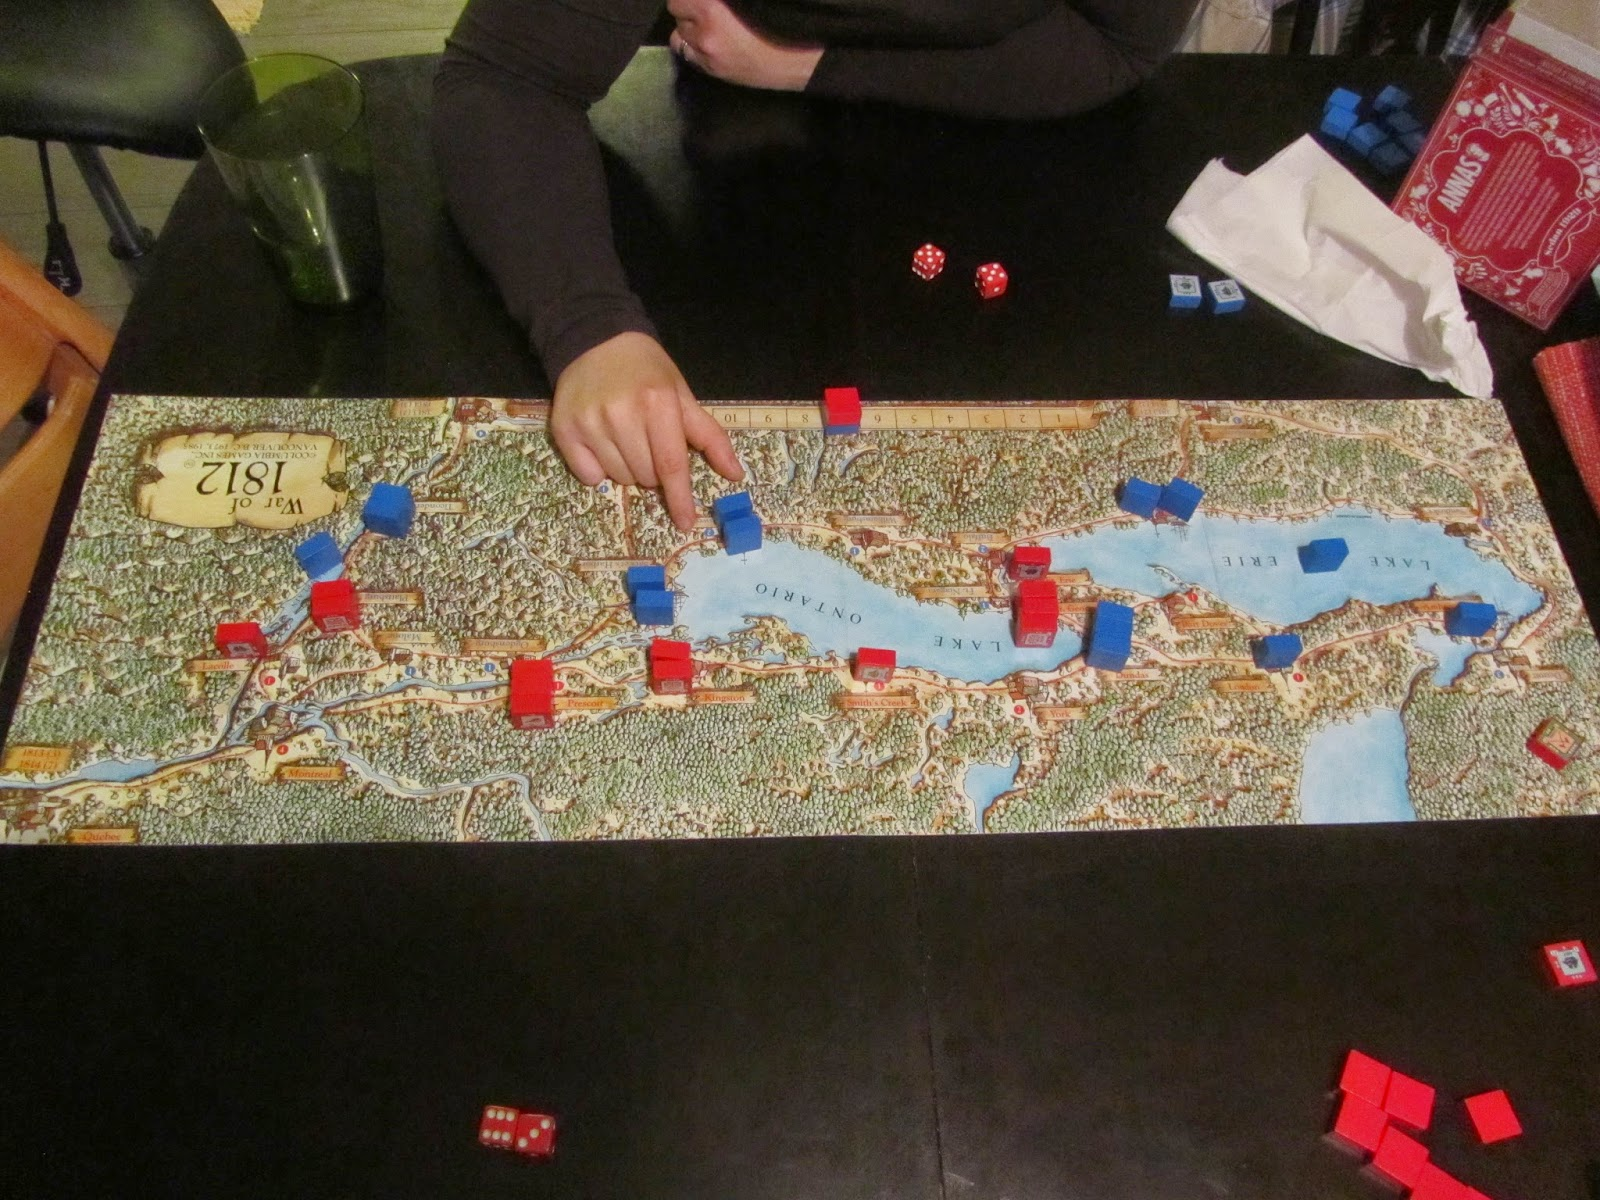 On Wargames and Such: Wargaming with my wife and thoughts on